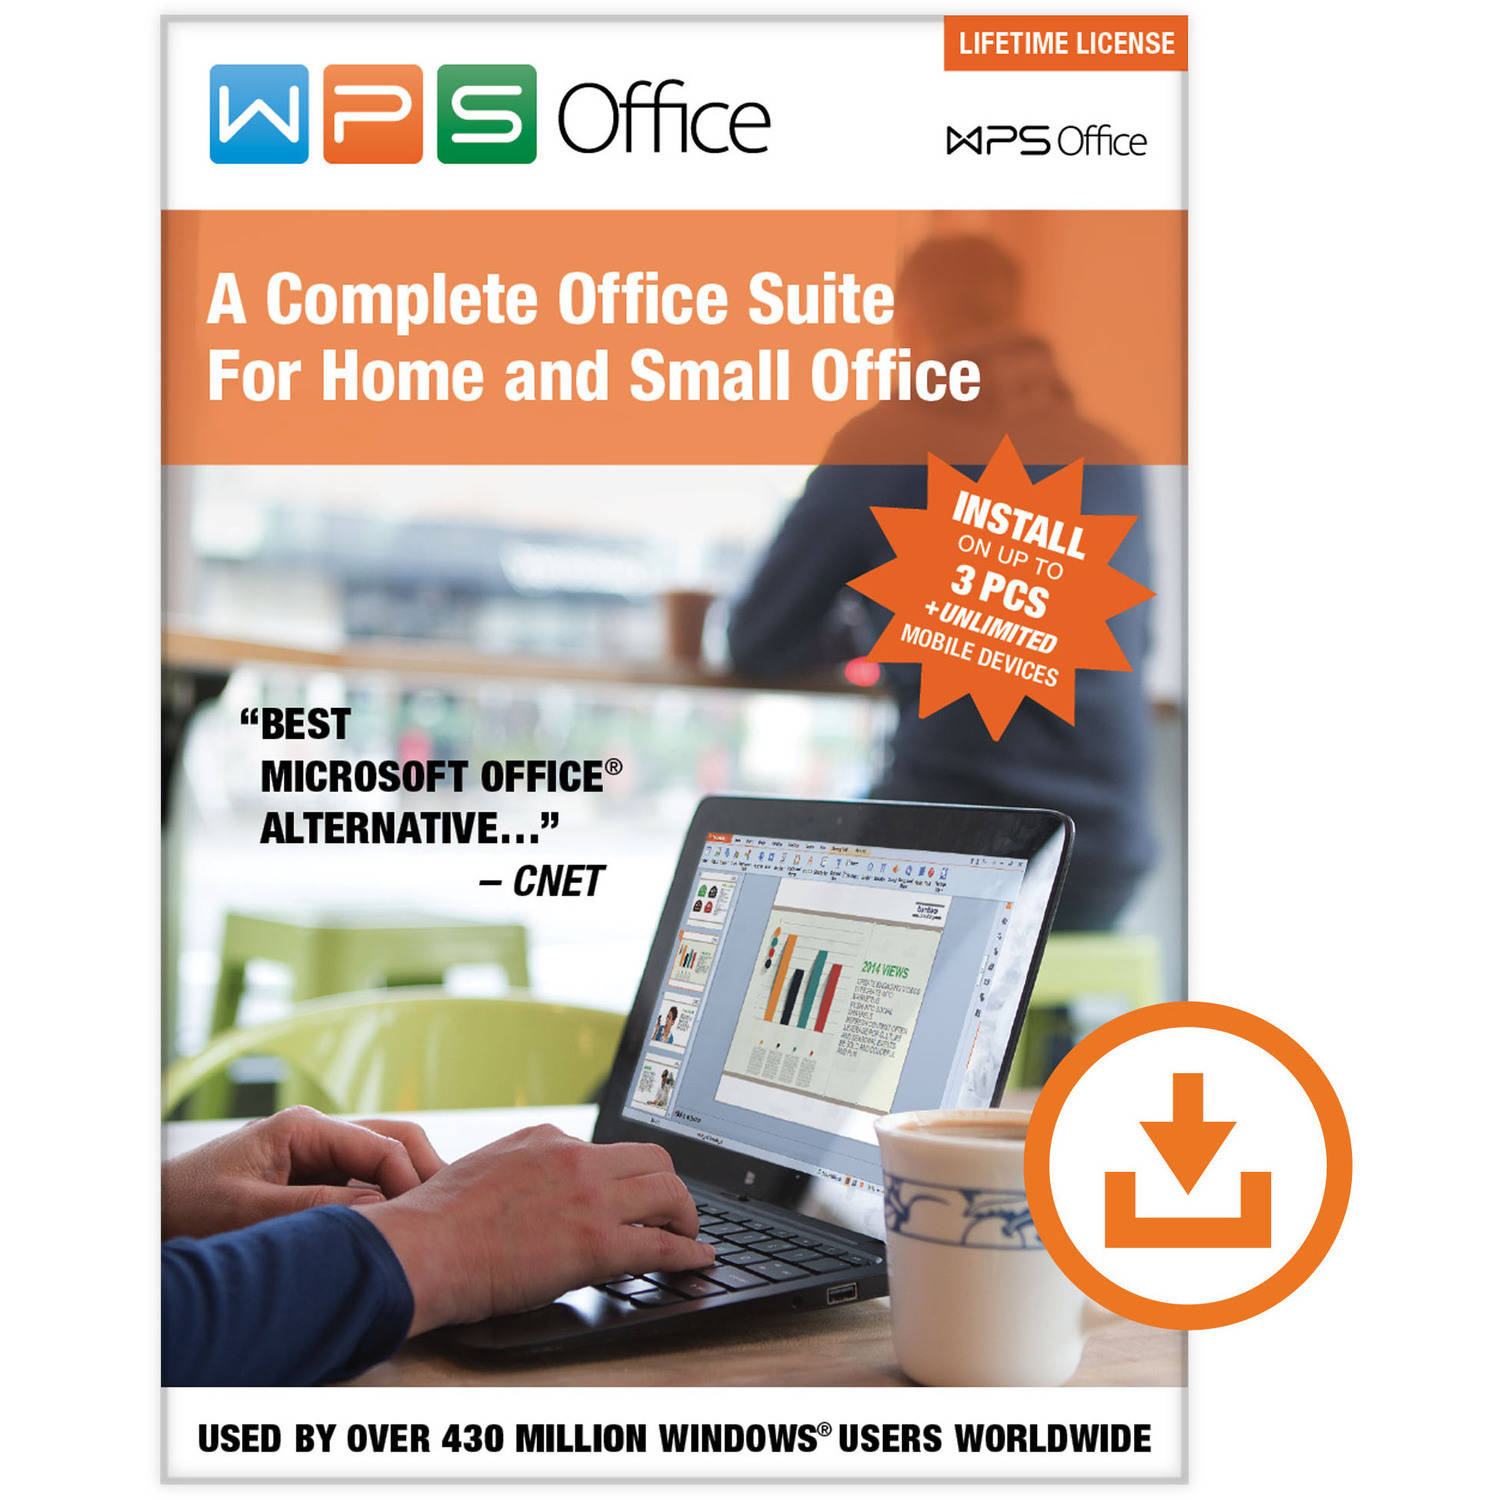 WPS Office: Lifetime License (3 PCs/Unlimited Mobile Installs) (Digital Code)